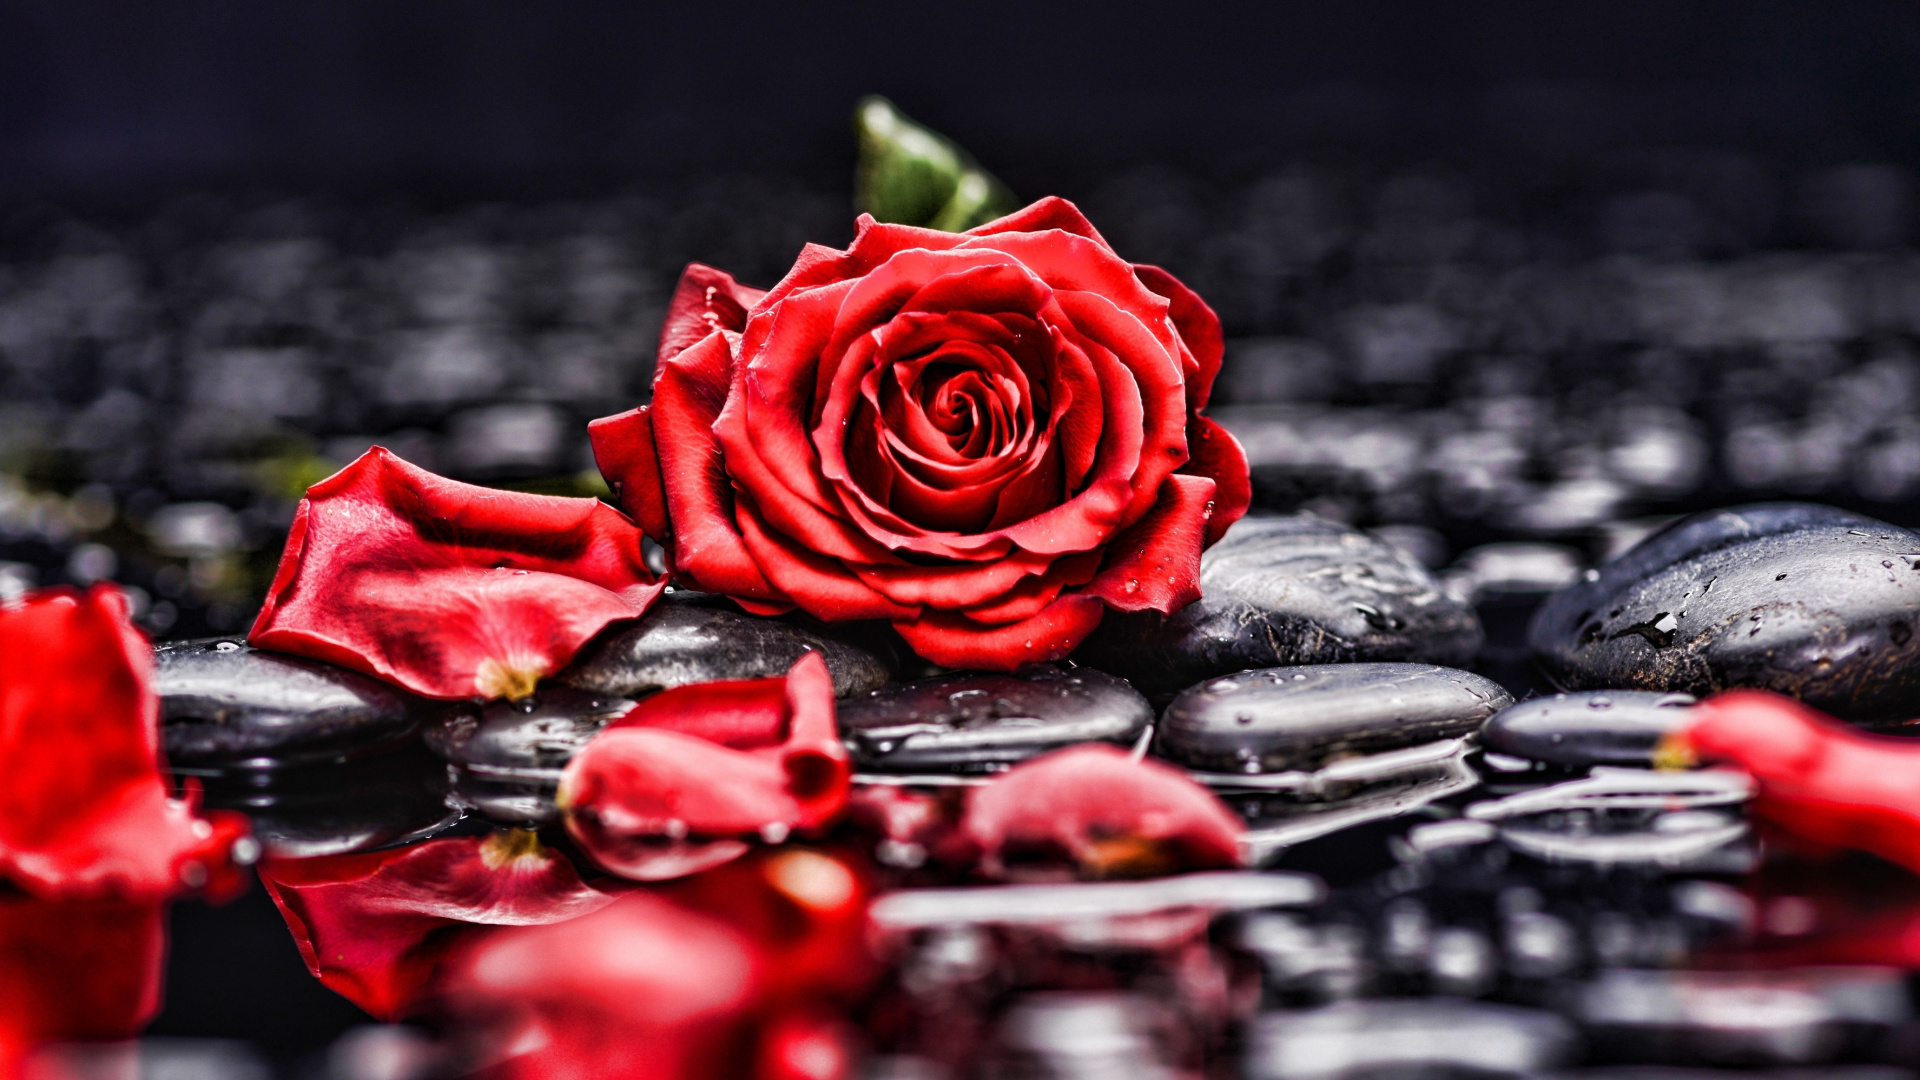 Pebbles Rocks Red Rose Blur Portrait Wallpaper Black White And Red Rose Painted Flower Print 848684 Hd Wallpaper Backgrounds Download